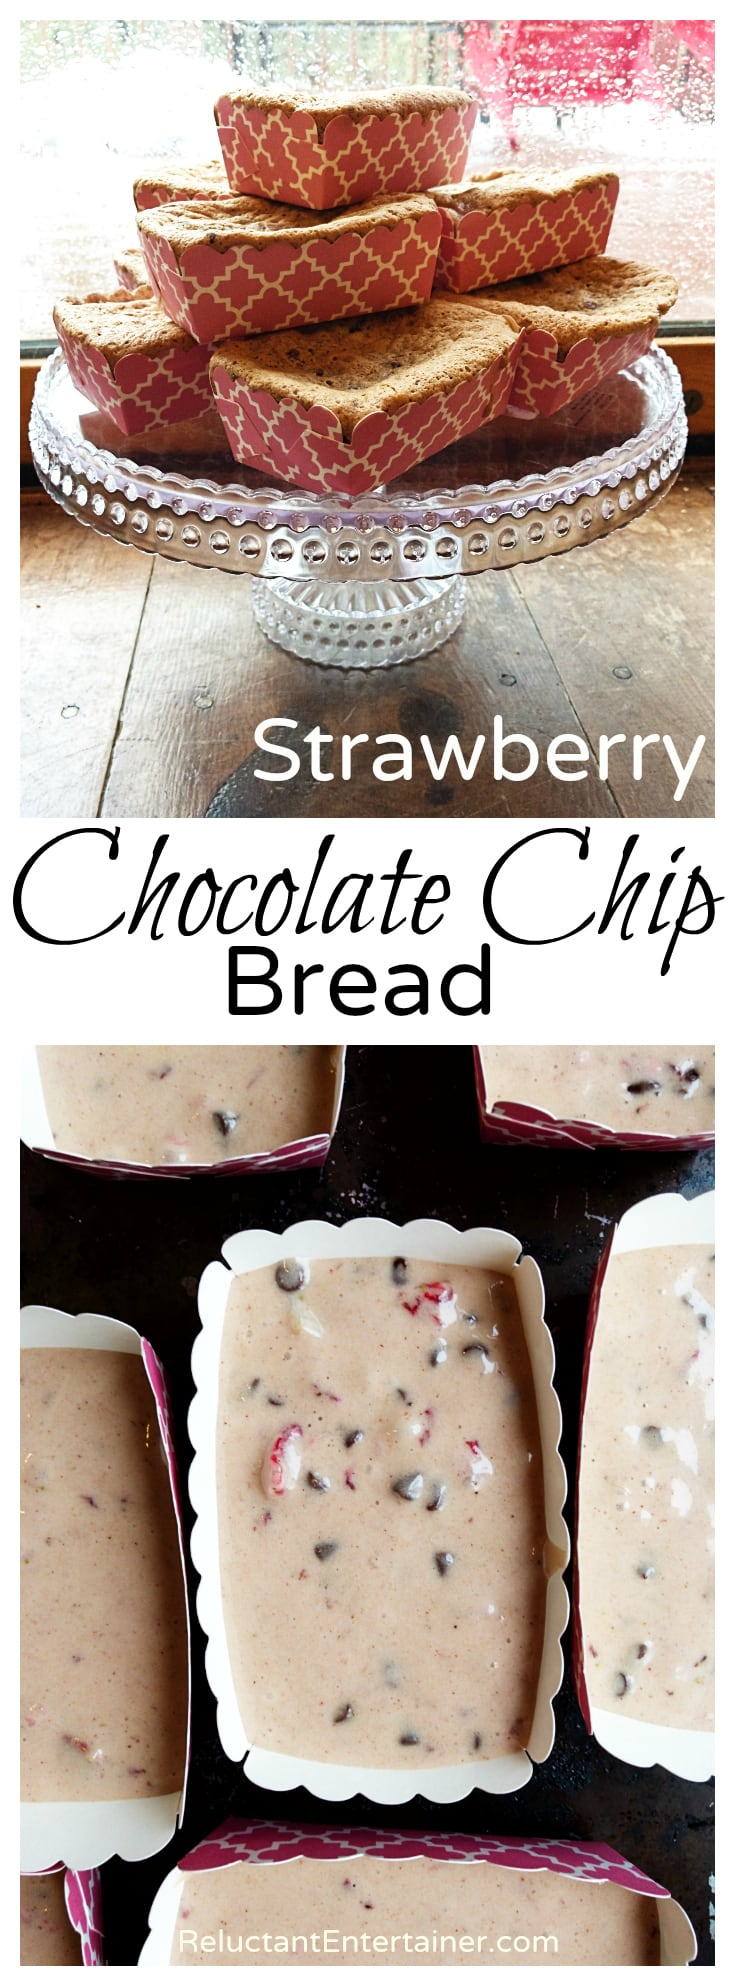 Strawberry Chocolate Chip Bread Recipe